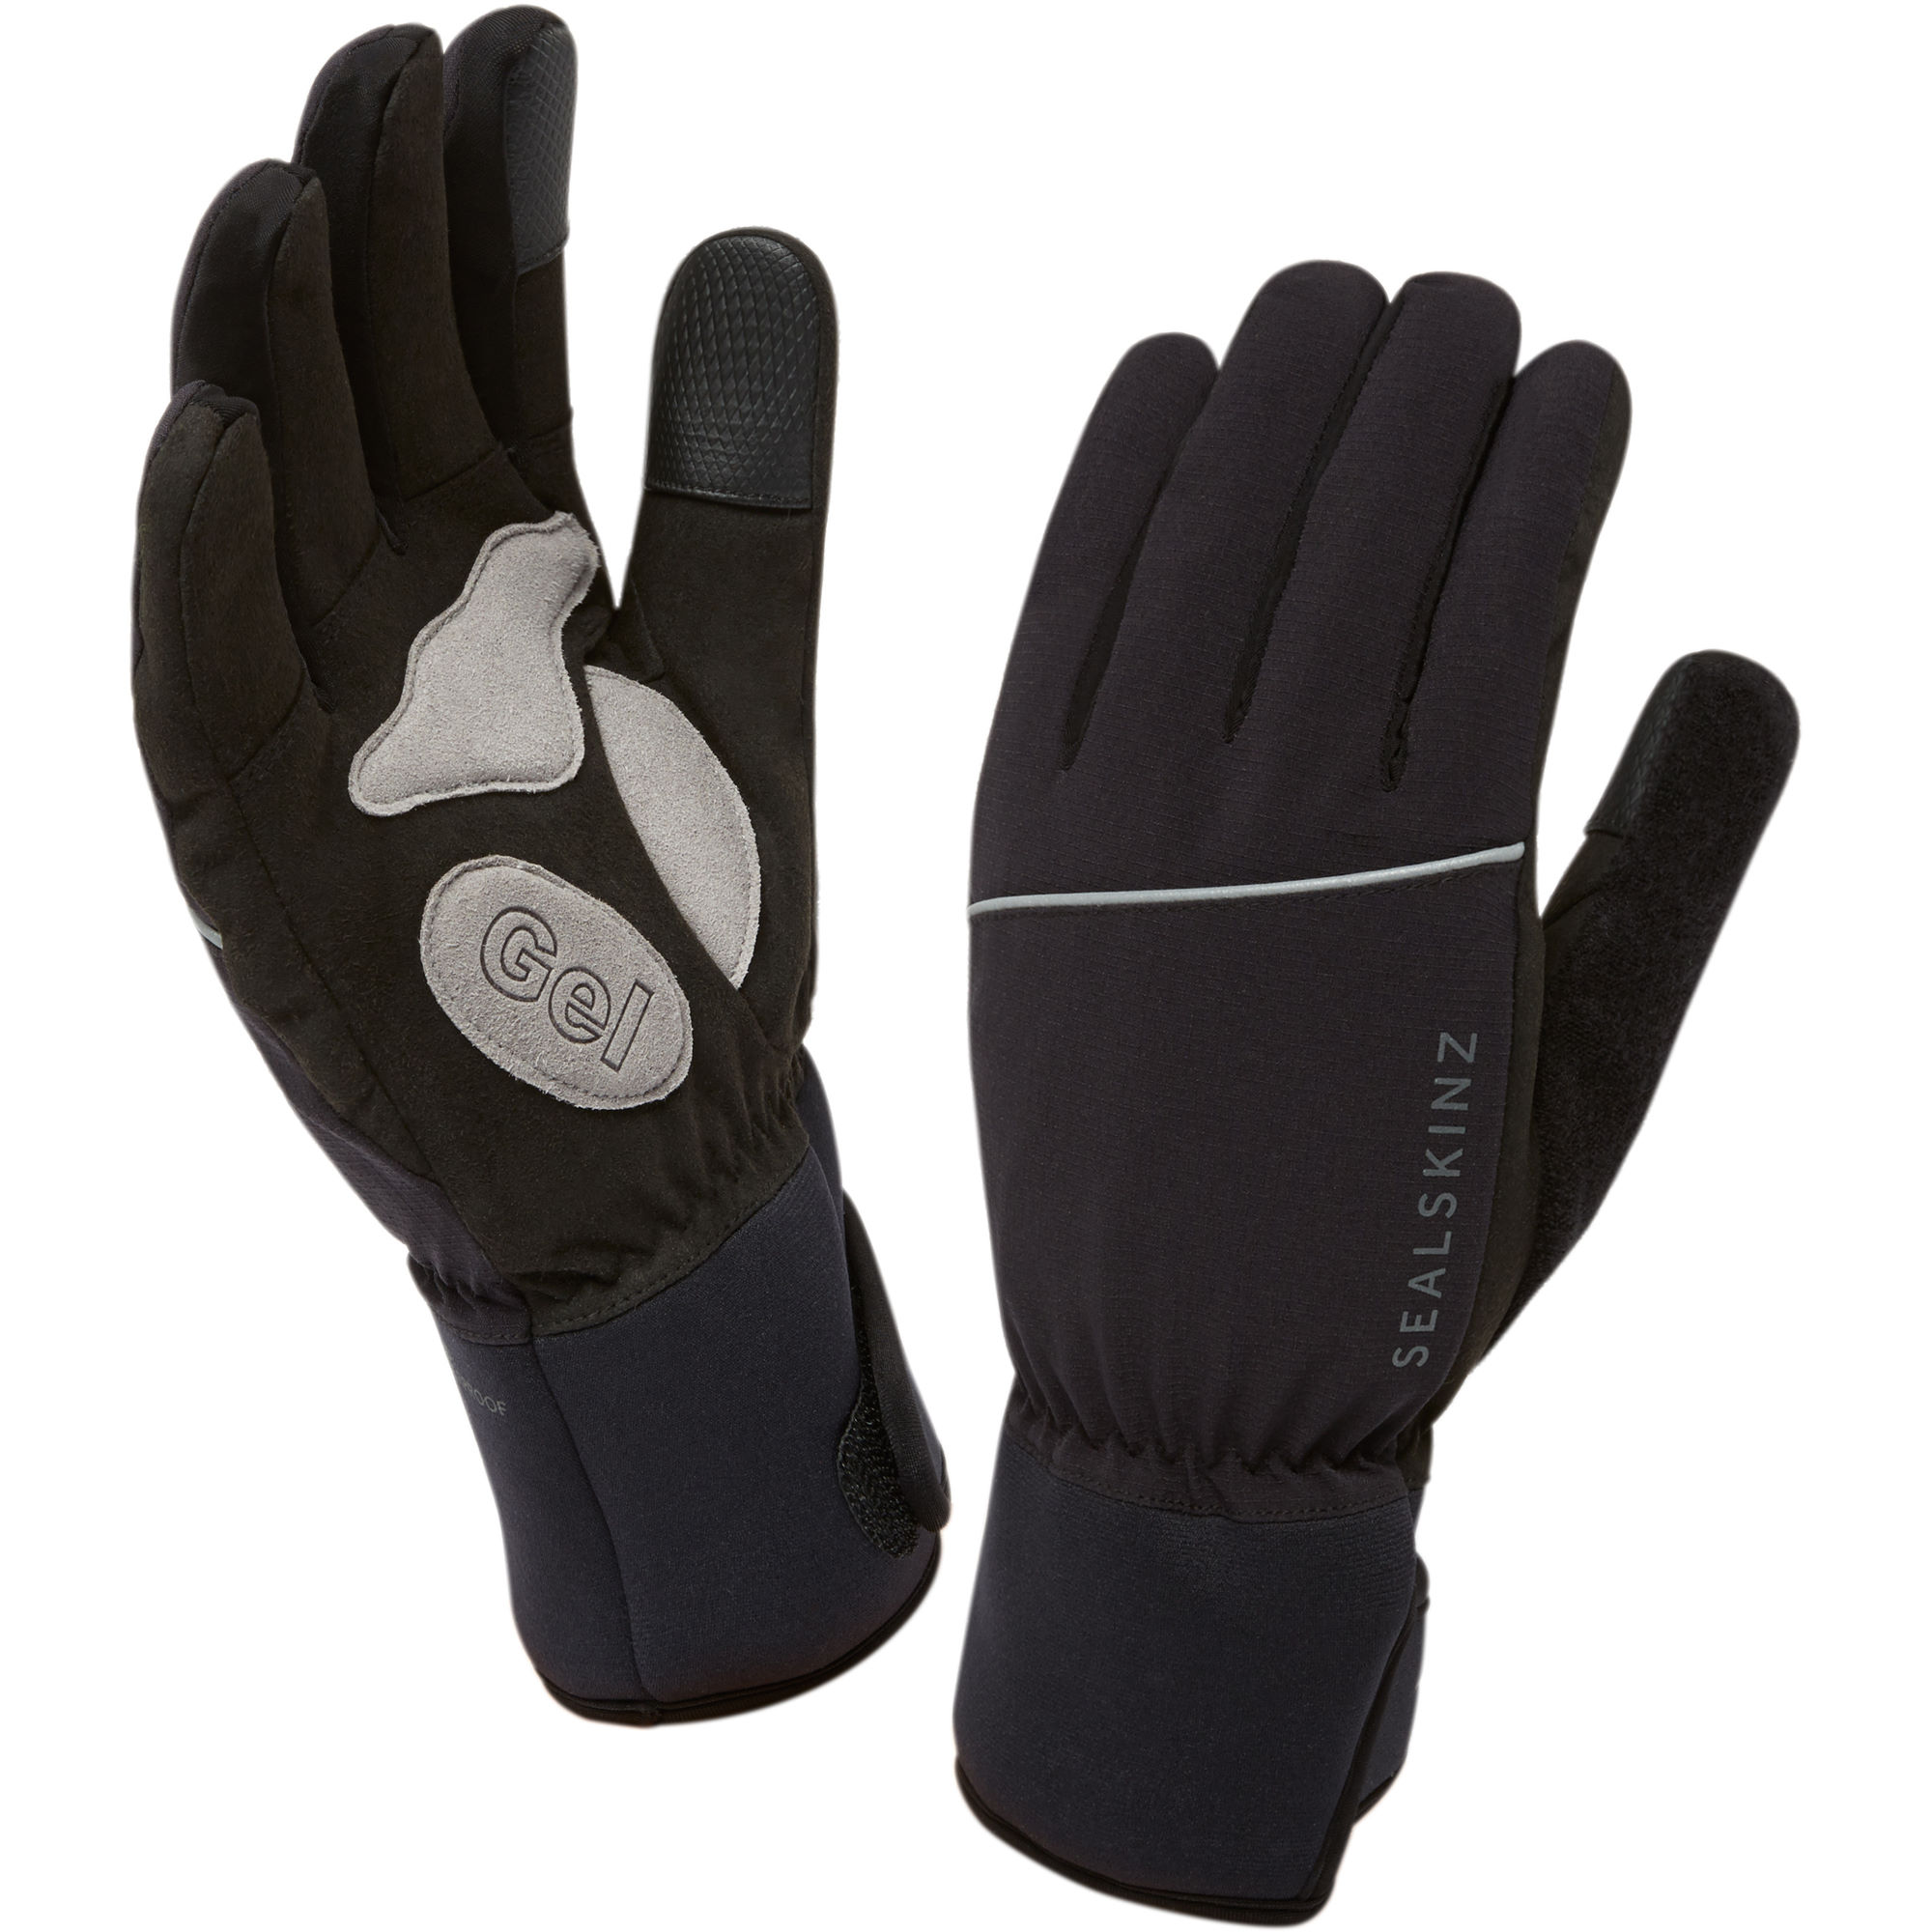 Wiggle | SealSkinz Winter Cycle Gloves | Winter Gloves